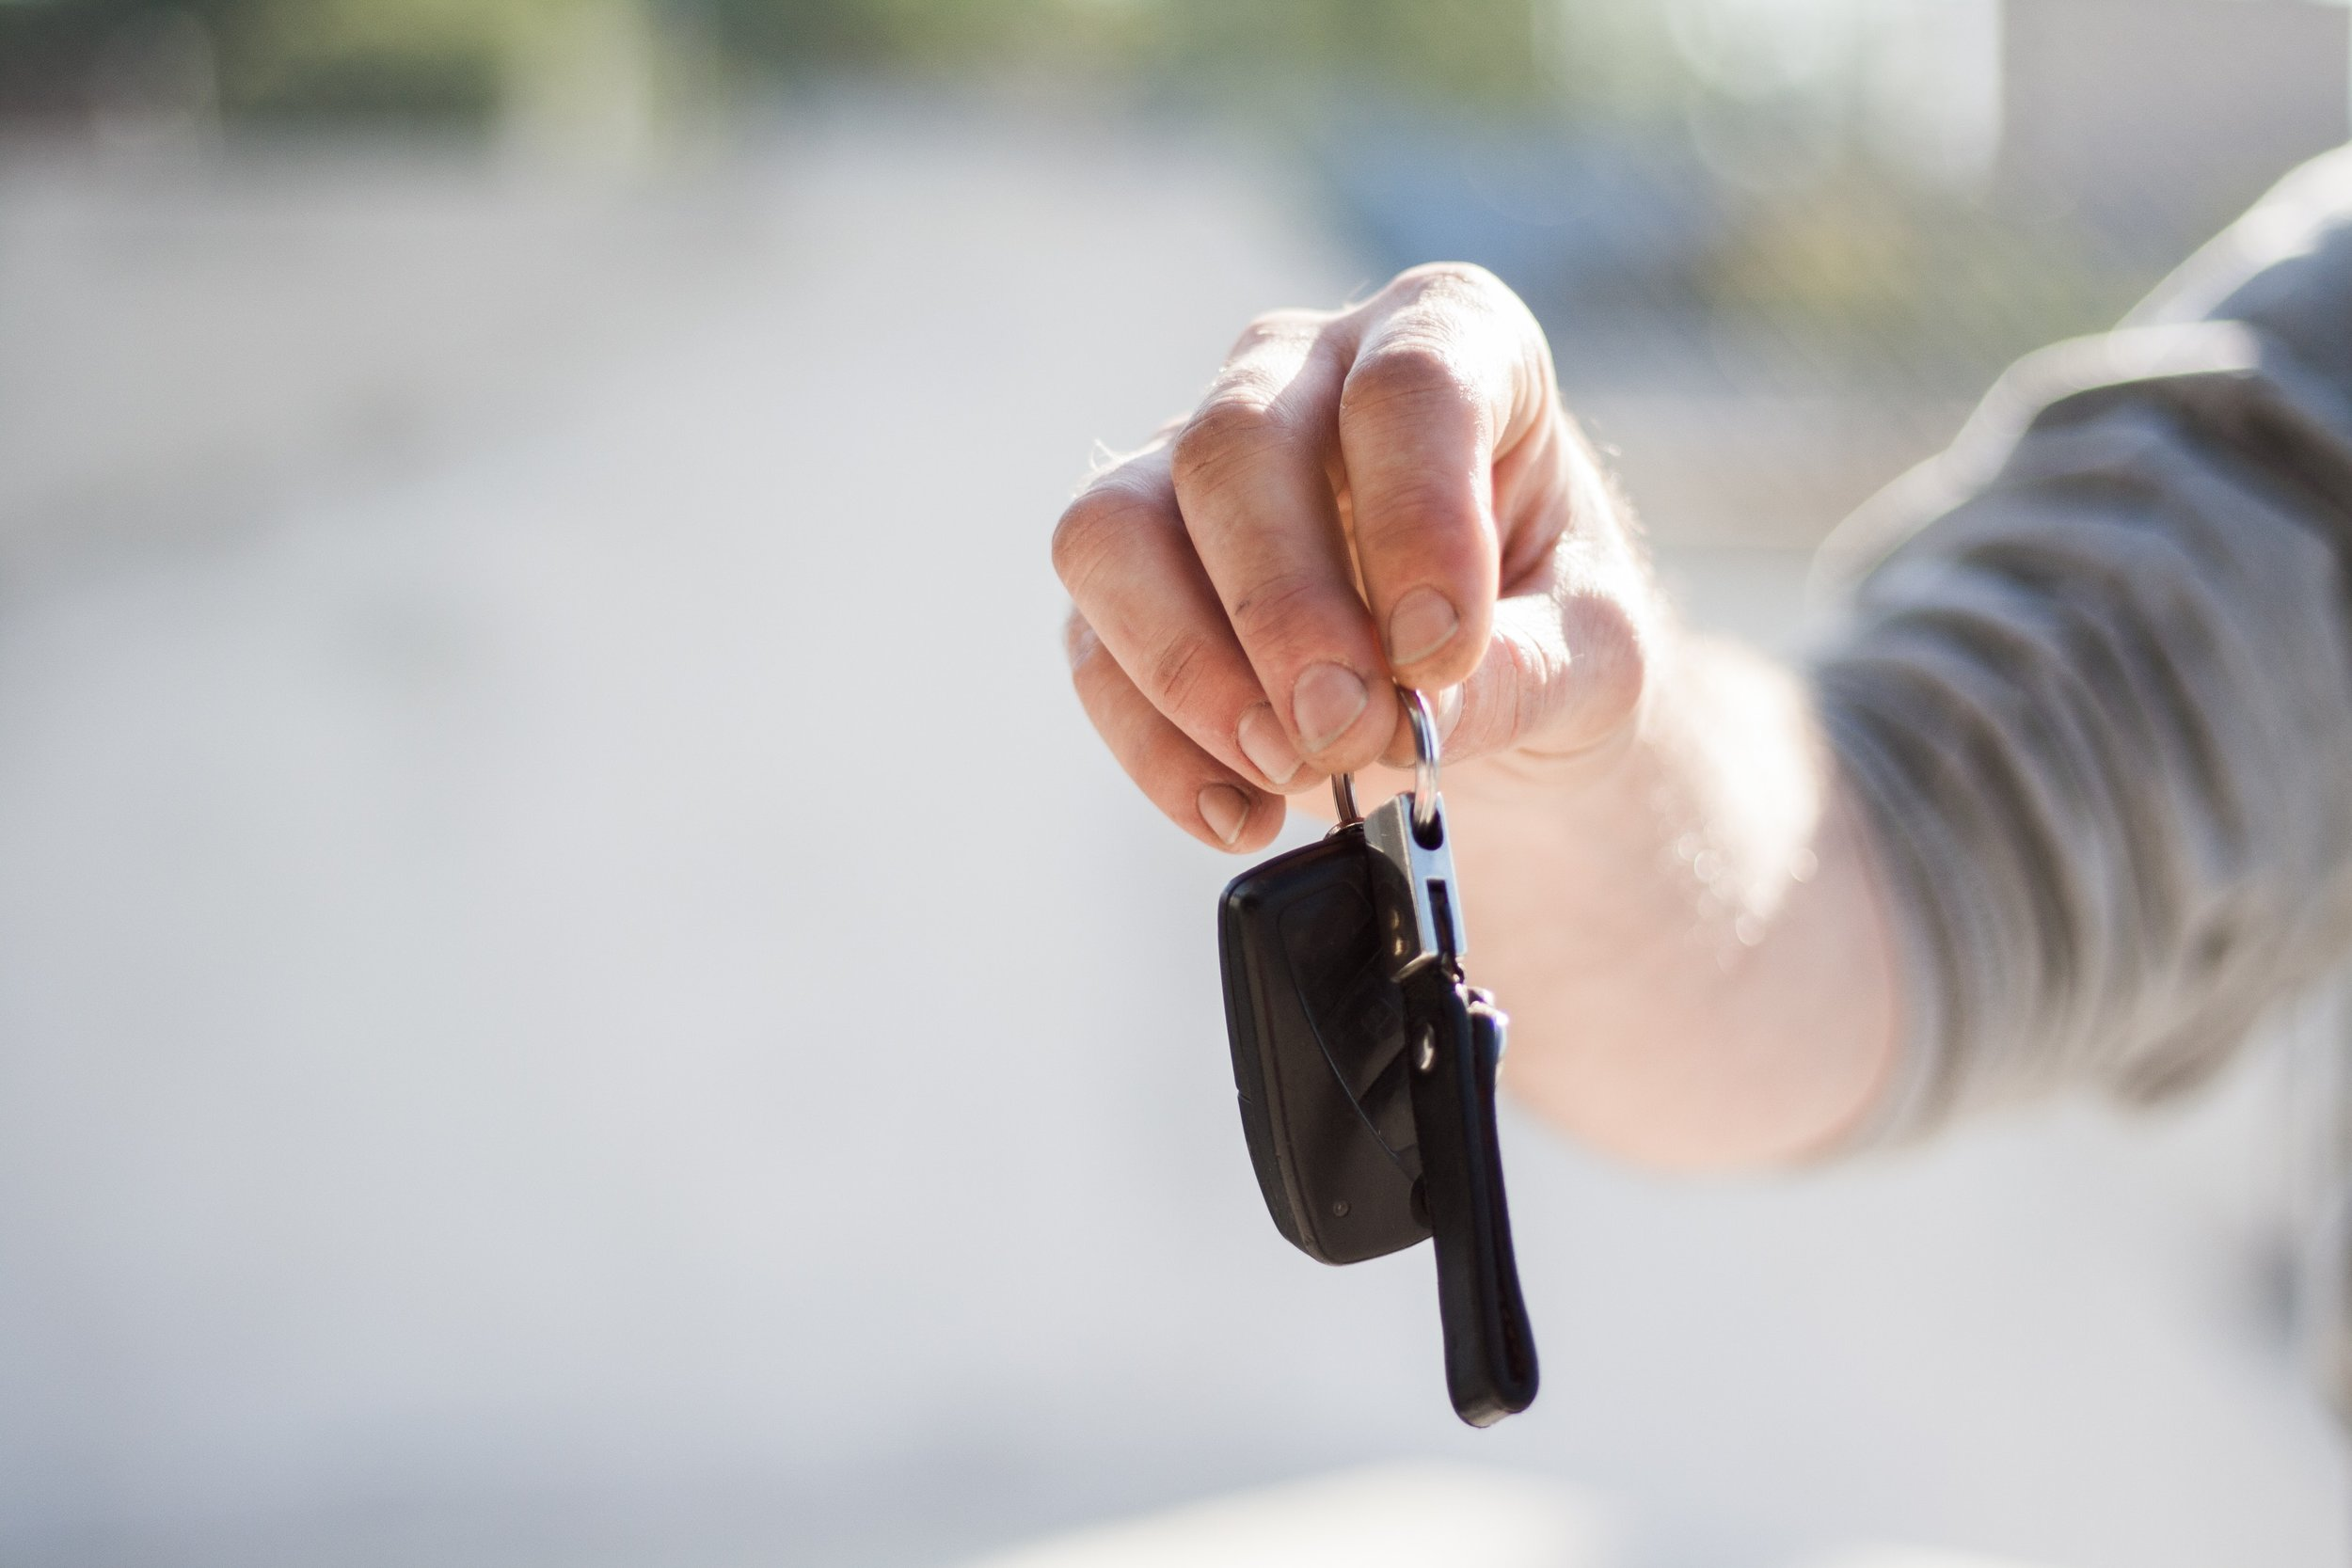 car-buying-car-key-car-purchase-97079.jpg